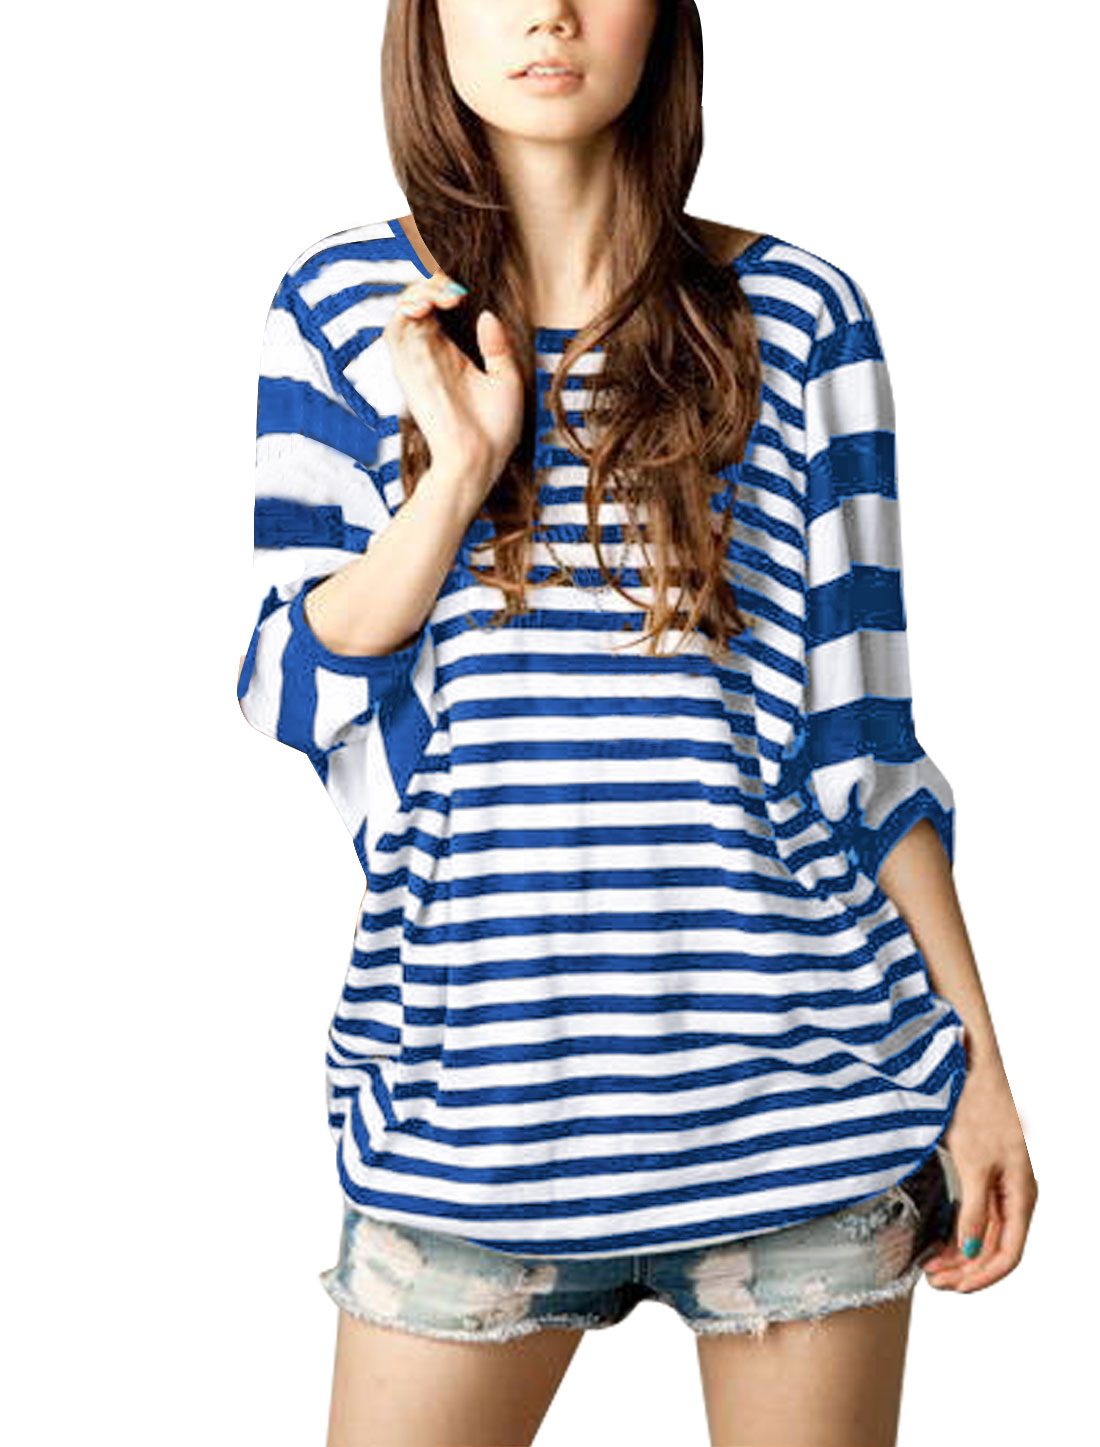 Ladies Pullover Stripes Stretchy Hem Blue White Shirt 1X